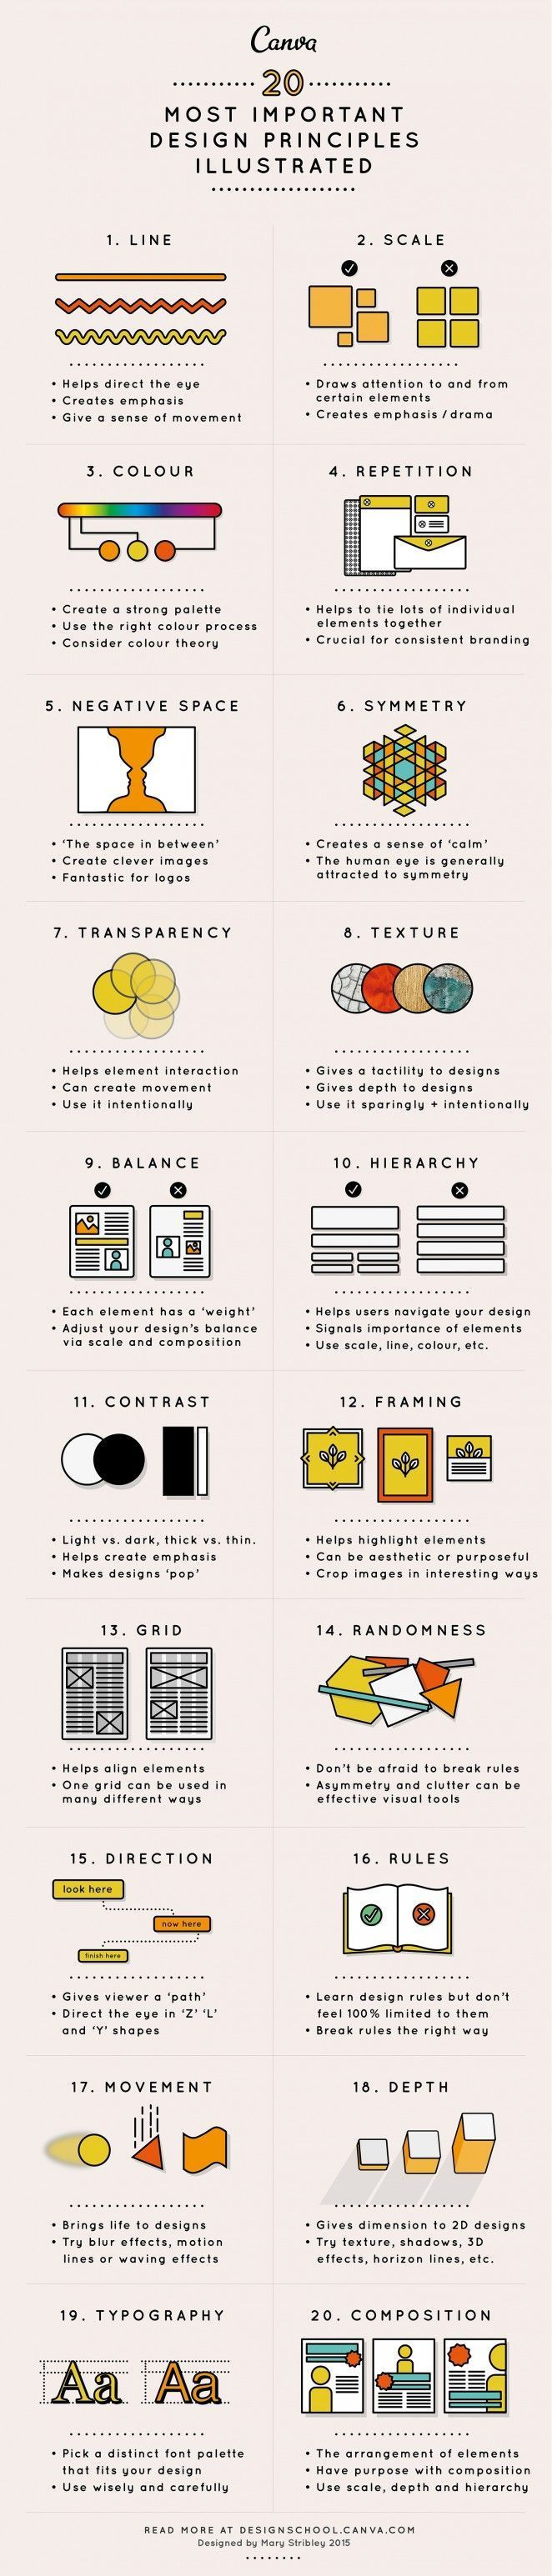 cool Design Elements and Principles - Tips and Inspiration By Canva                                                                                                                                                                                 More